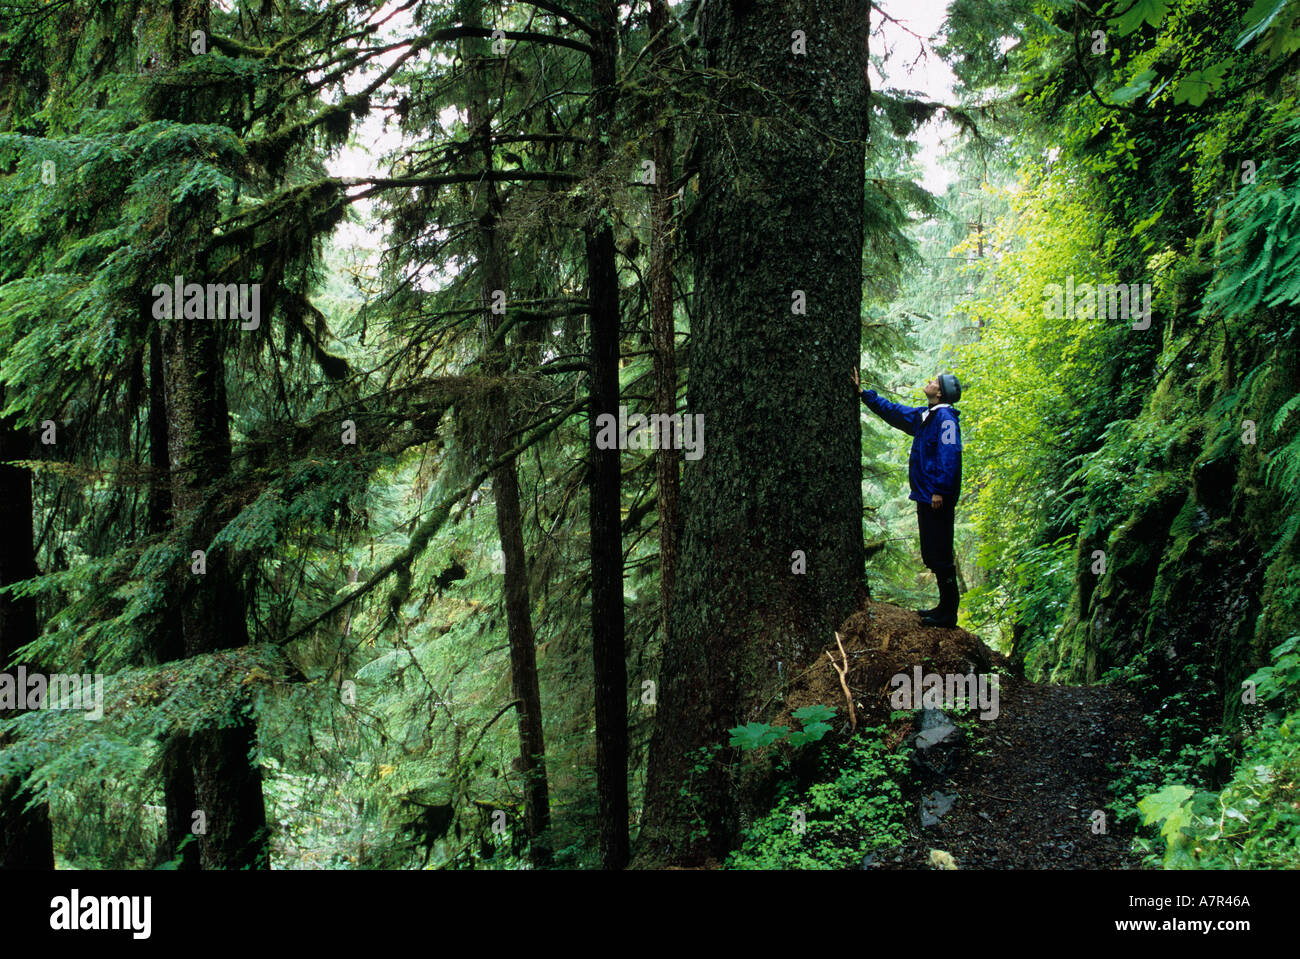 hiker studying tree in the lush rainforest of southeast alaska, tongass national forest near town of kake, kupreanof island - Stock Image